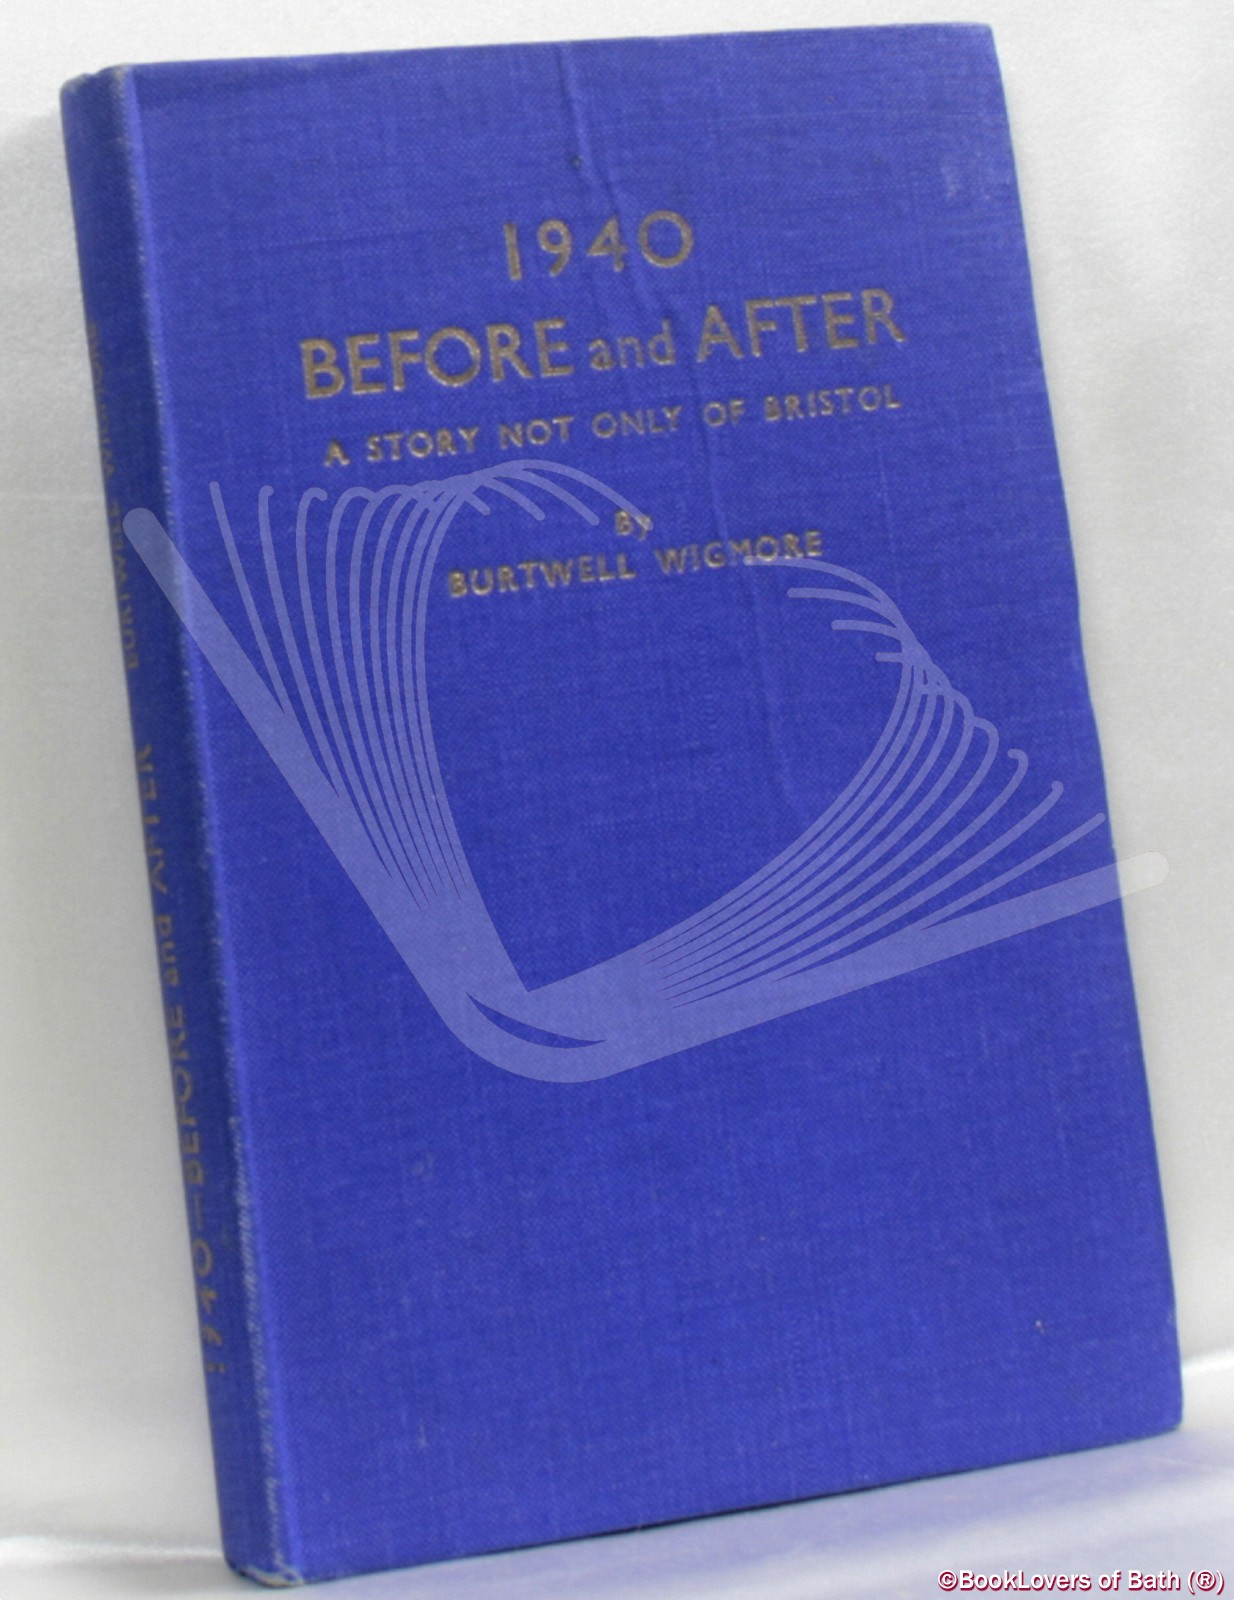 1940 Before and After: A Story Not Only of Bristol; Some Urgent Reflections, Reminiscences and Travel - Burtwell Wigmore